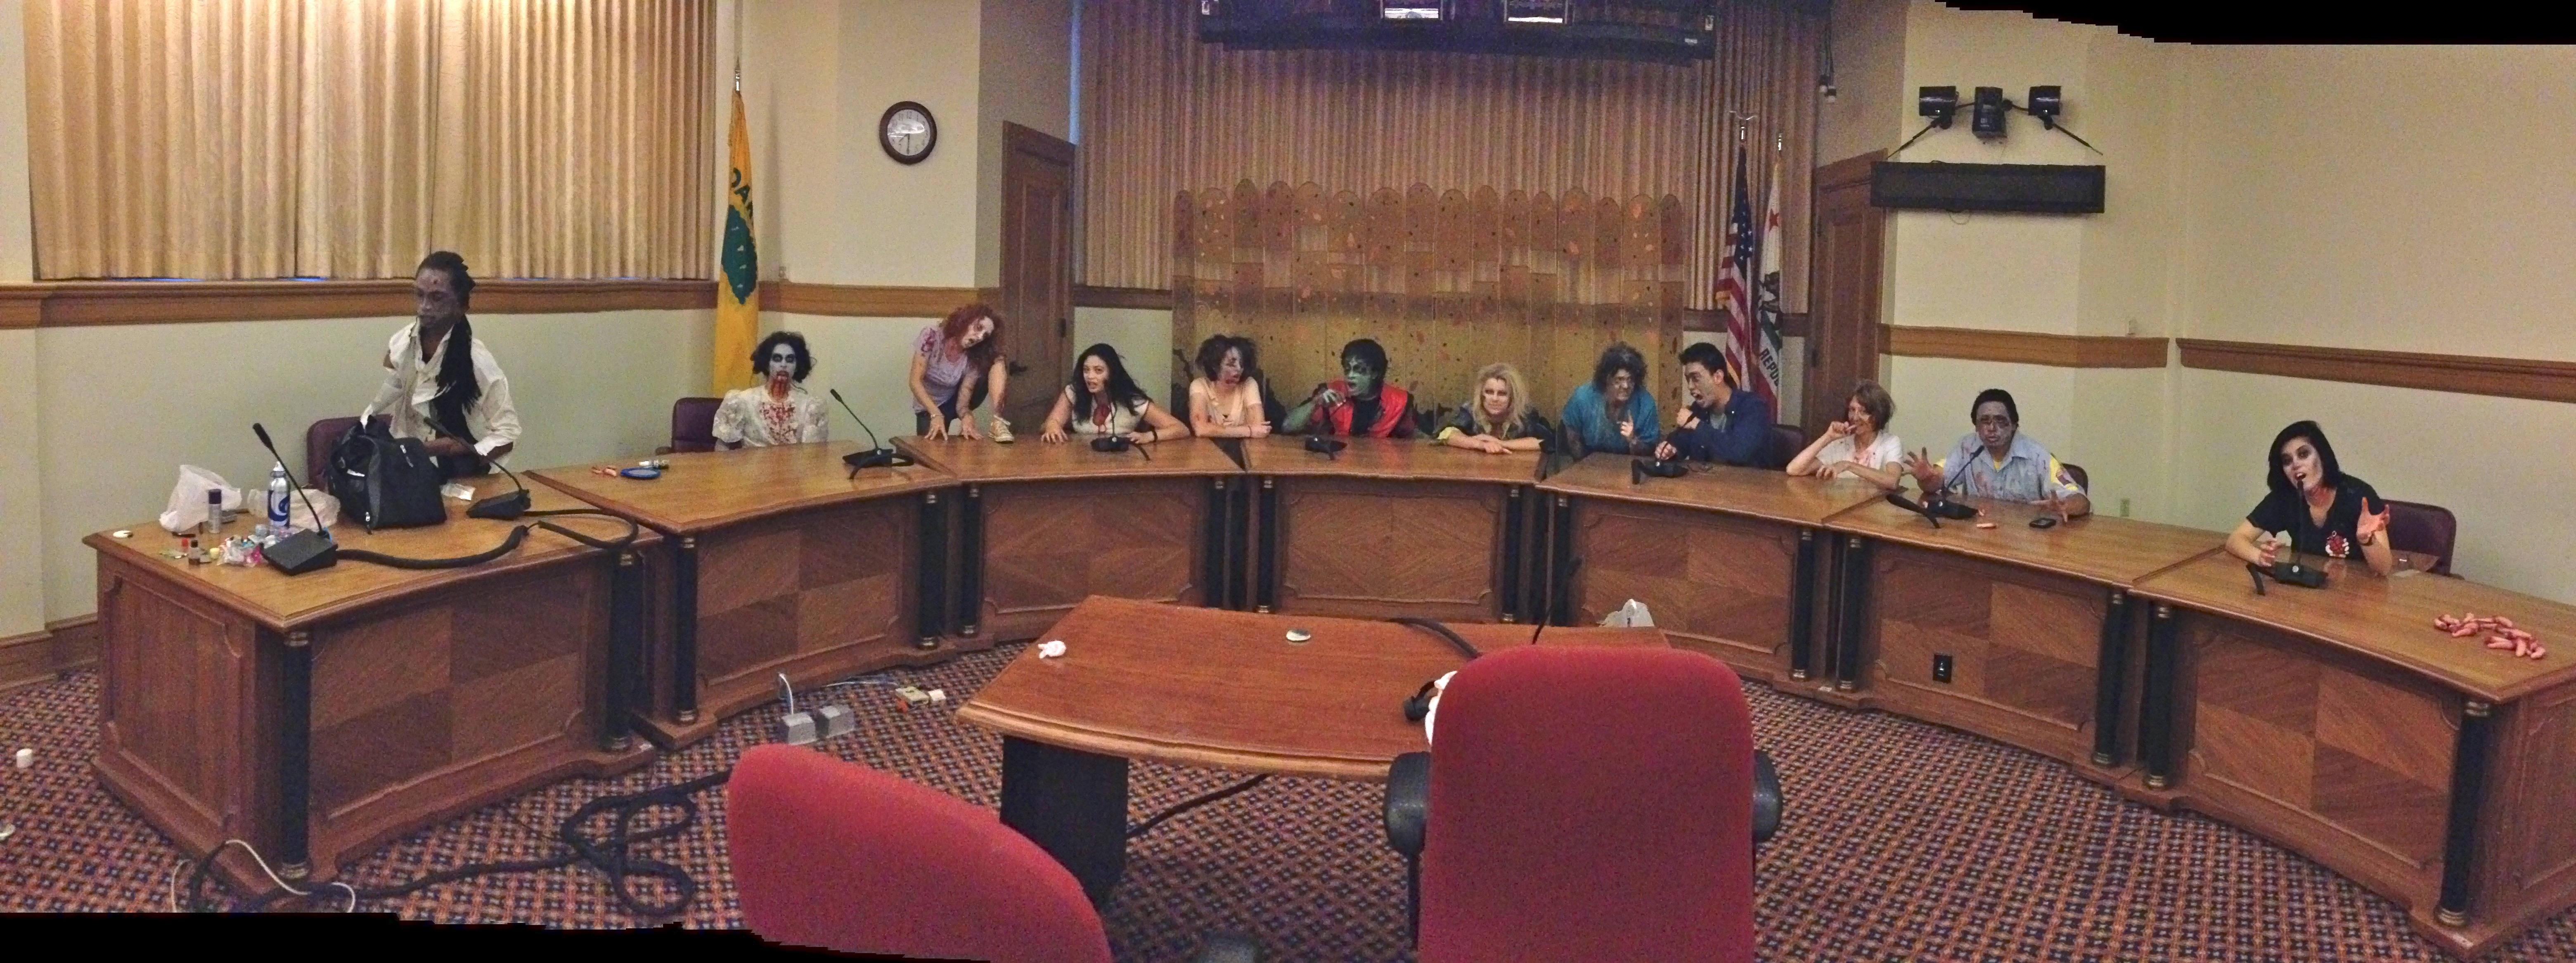 """city council meeting essays For the i love burnsville week"""" essay contest the burnsville city council, along with contest sponsor firefly credit union, presented three winners, and two honorable mentions at the june 6, 2017 city council meeting essay winners were awarded $50 from firefly credit union and their school received an additional $50."""